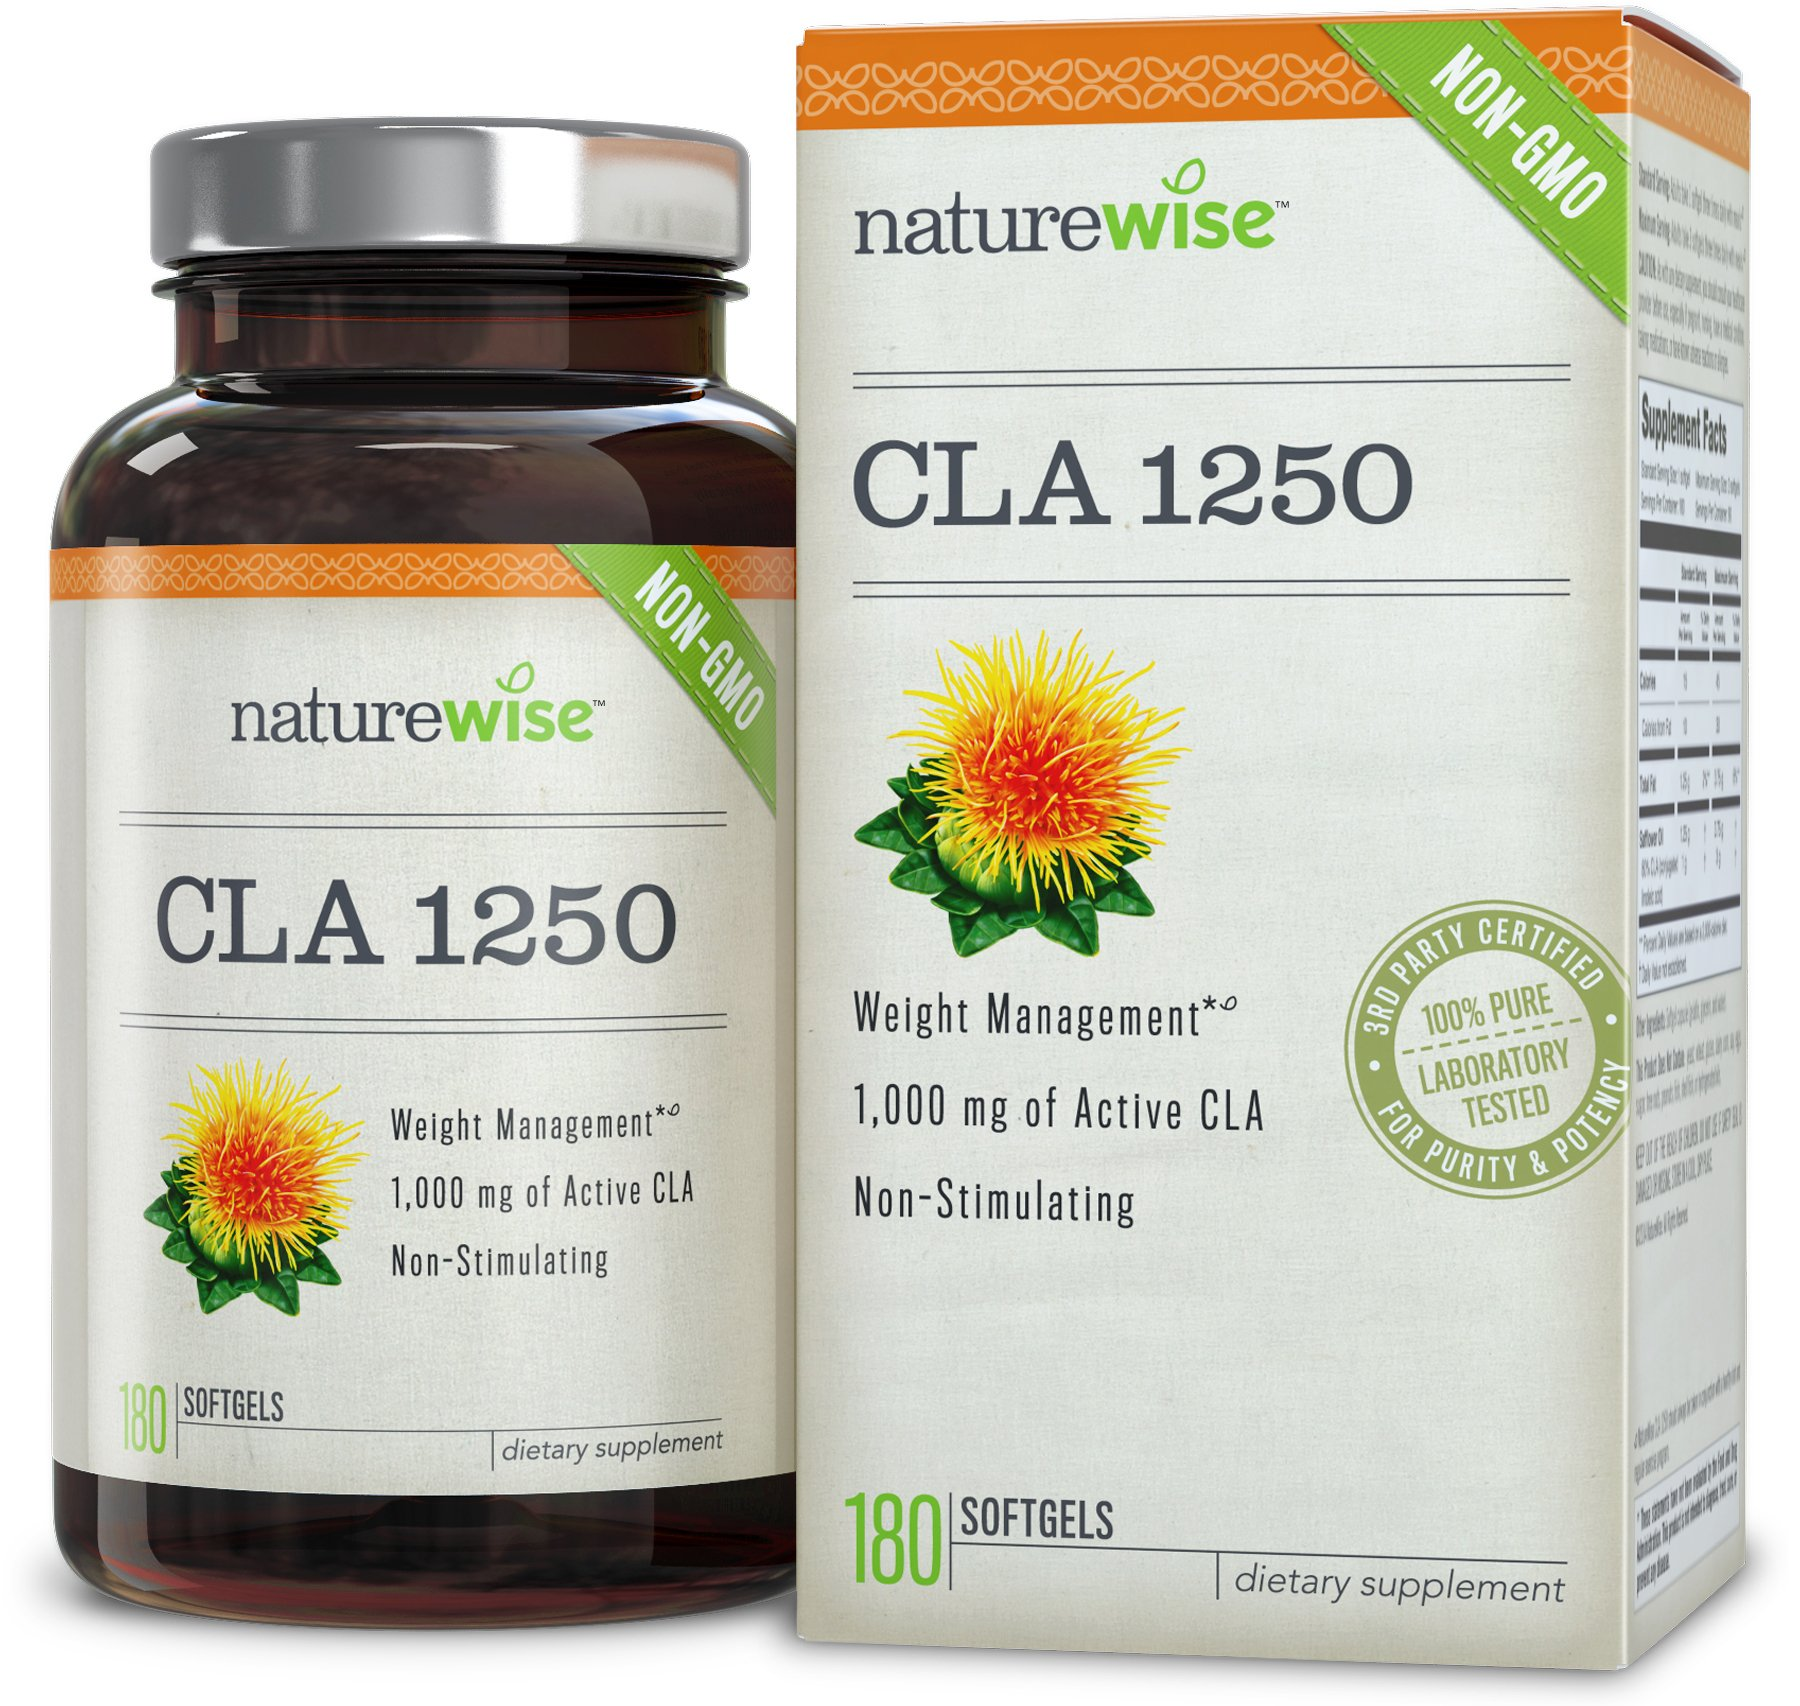 NatureWise CLA 1250, High Potency, Natural Weight Loss Exercise Enhancement, Increase Lean Muscle Mass, Non-Stimulating, Non-GMO 100% Safflower Oil, 180 count